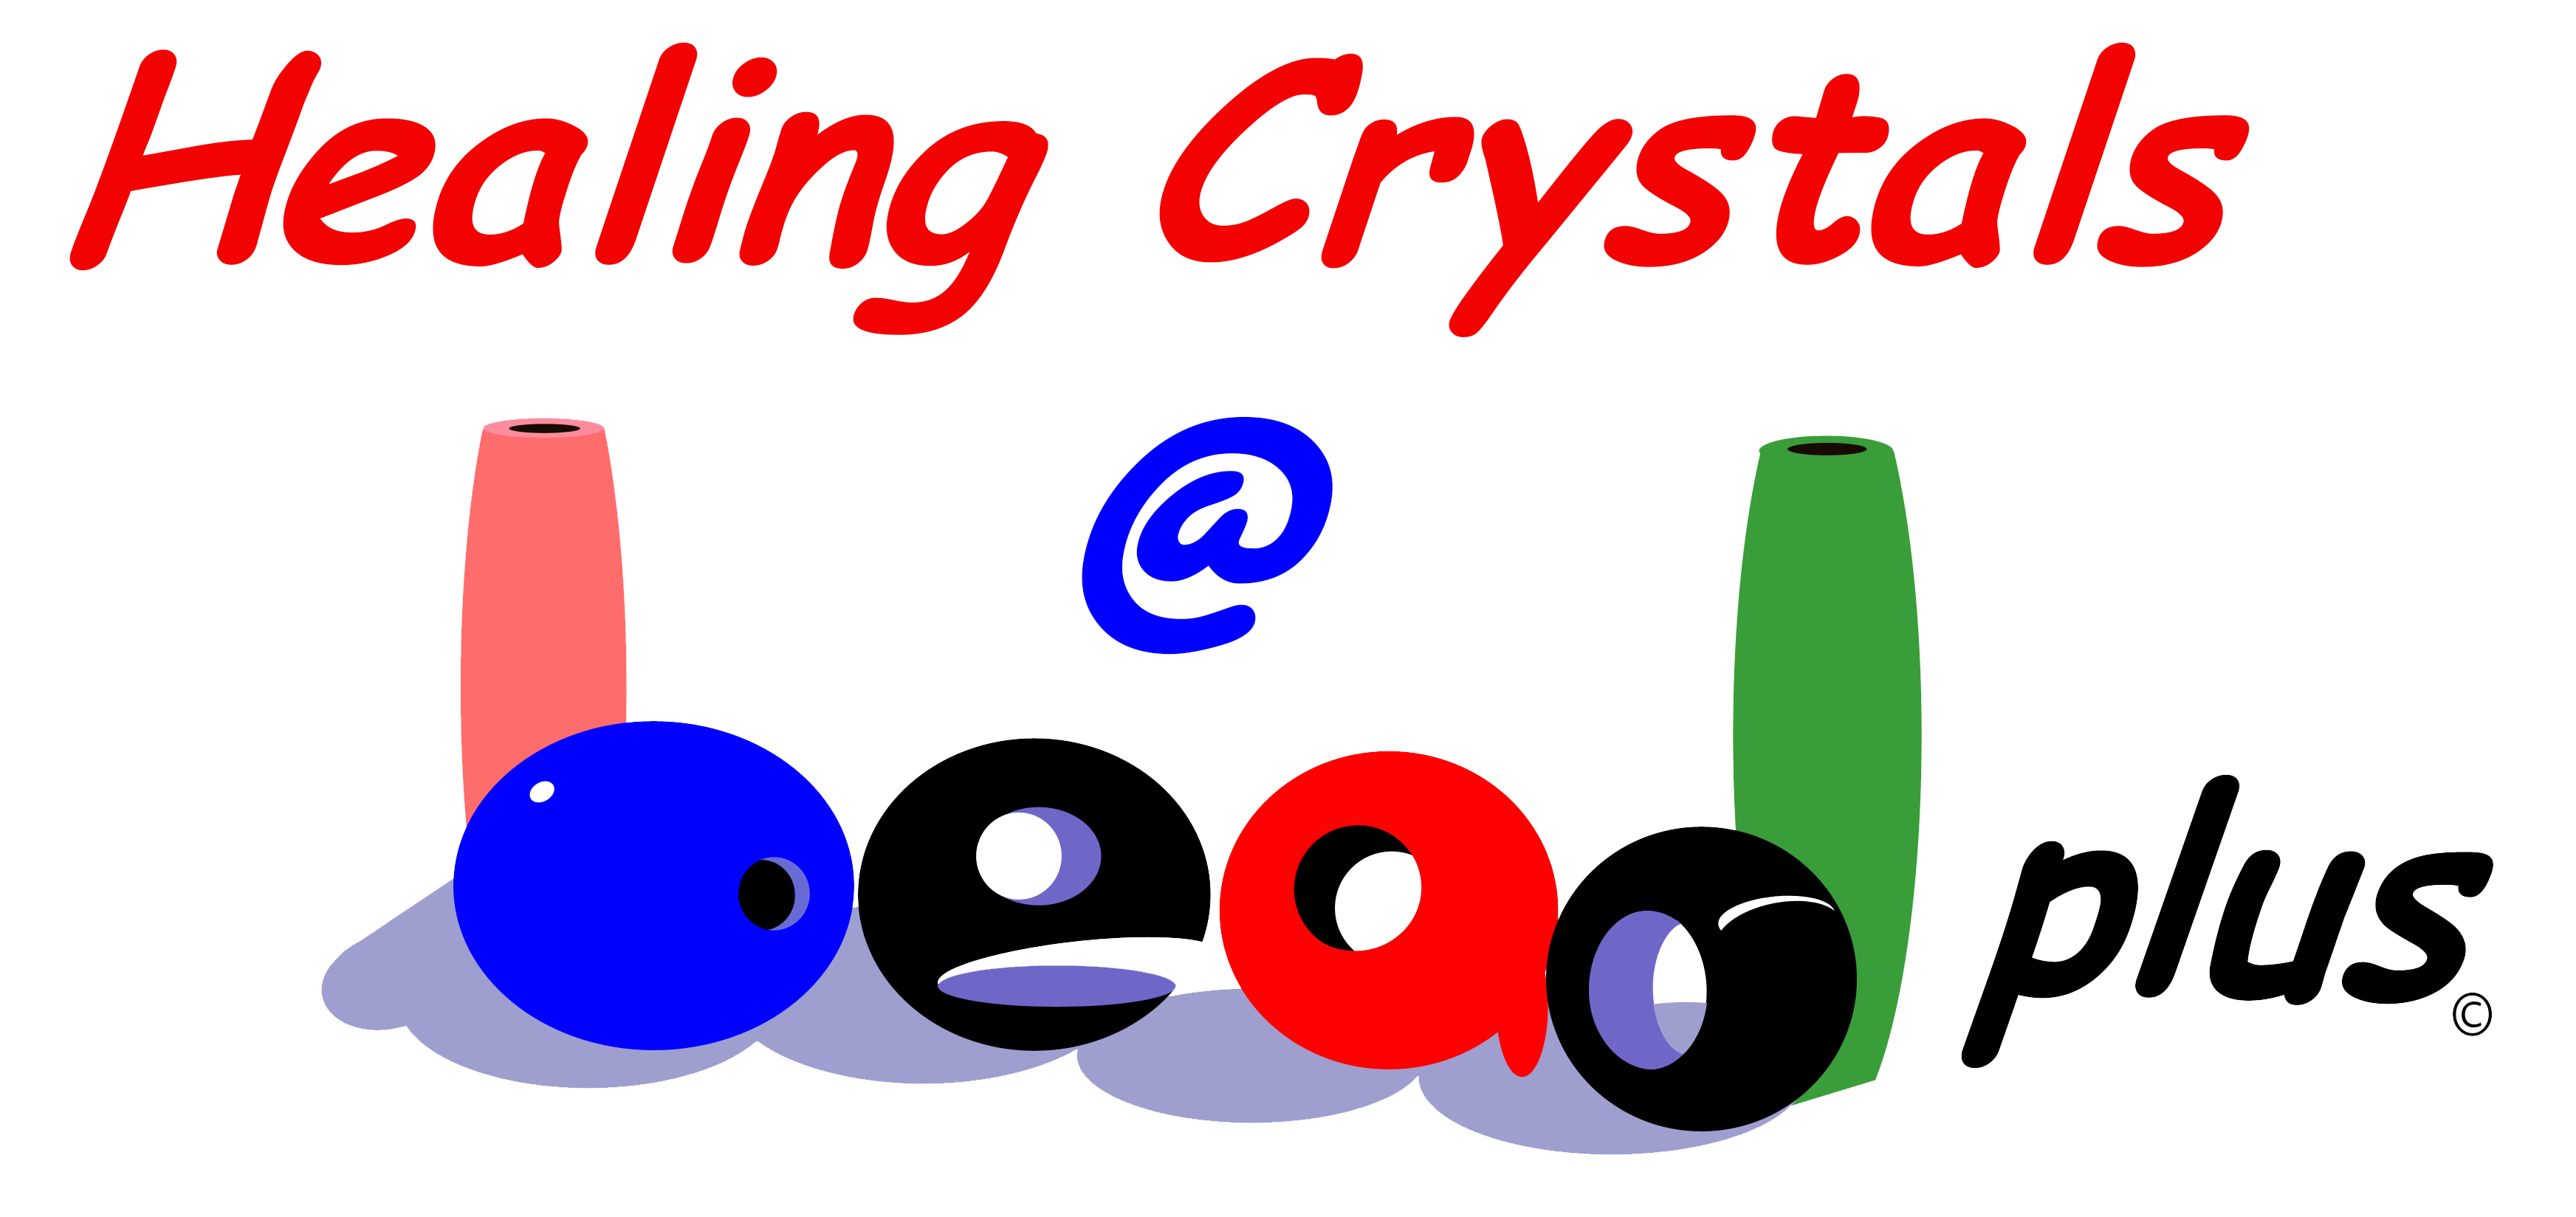 Healing Crystals at Beadplus logo